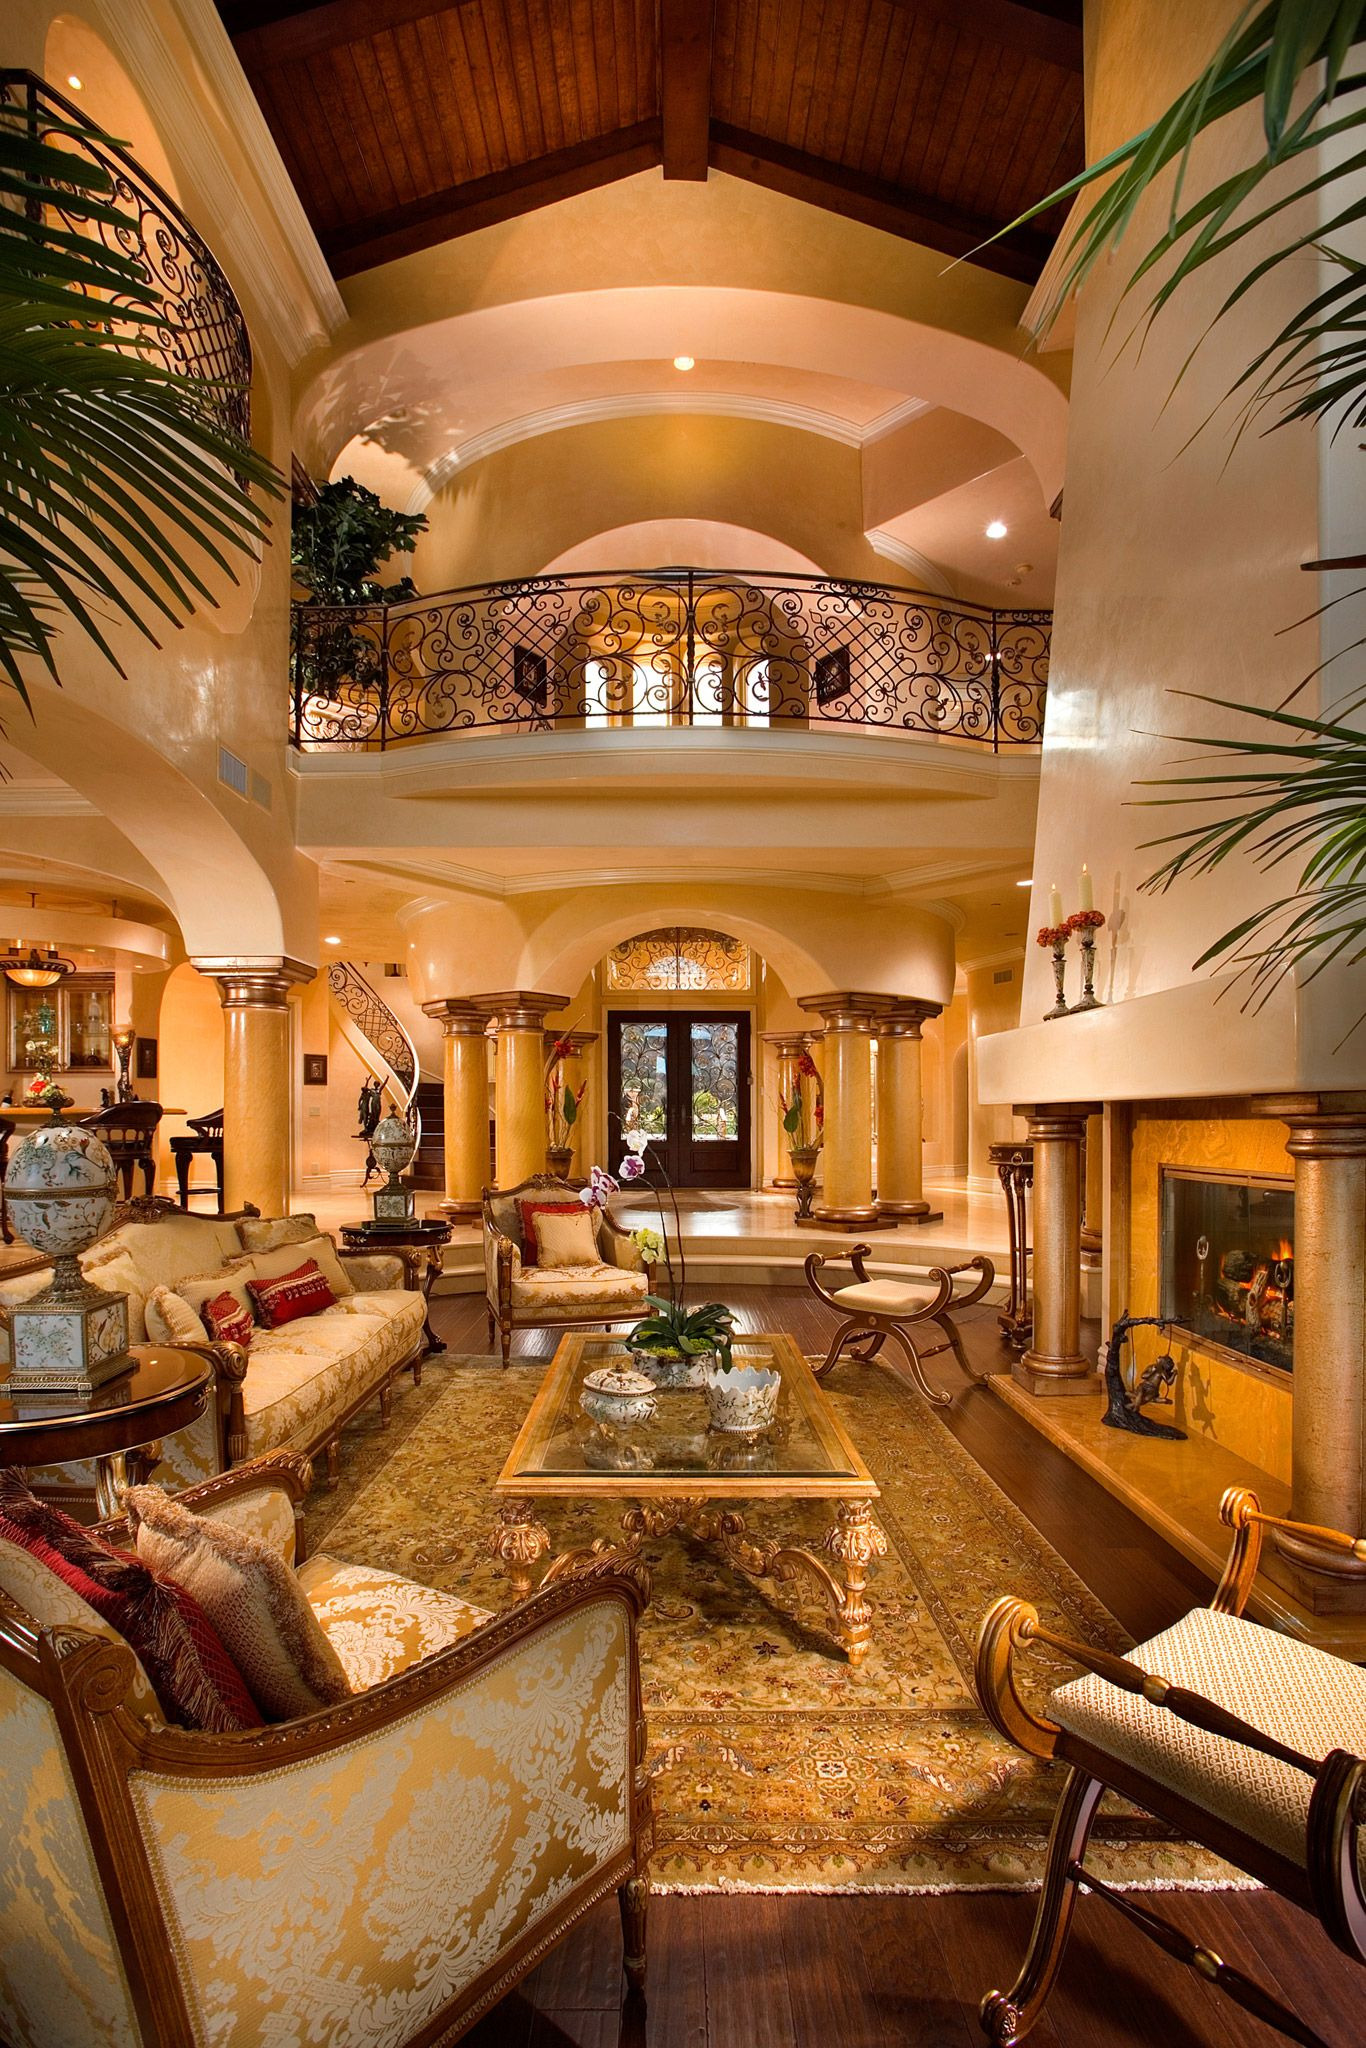 Inside Beautiful Homes Pictures Unique Looks Like the Inside Of A Hotel